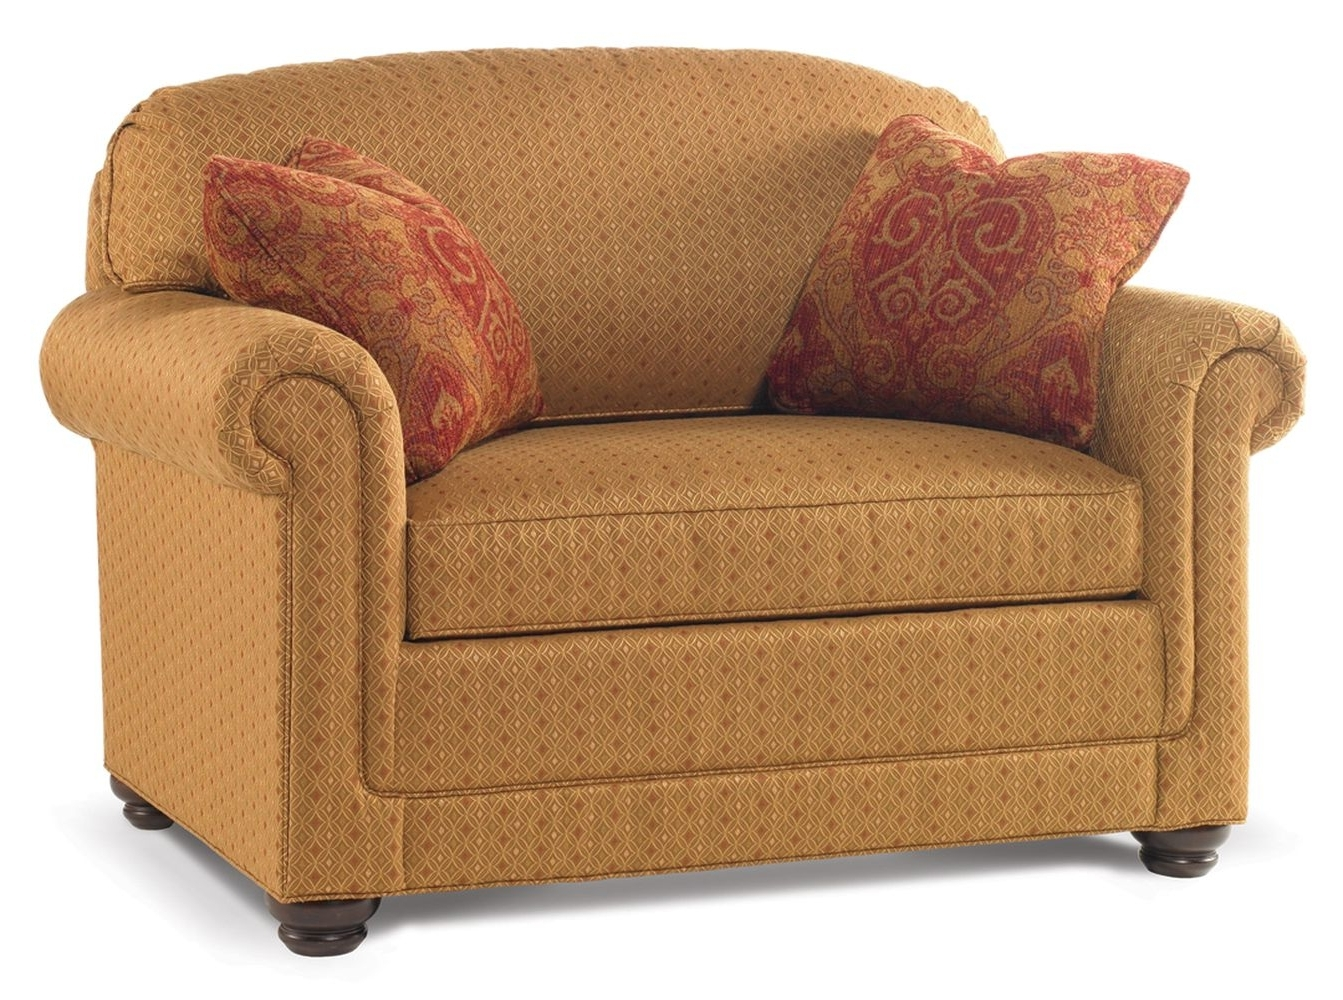 Popular Sofas And Chairs In Small Twin Sleeper Sofas Chairs With Pillow And Storage Plus Brown (View 16 of 20)